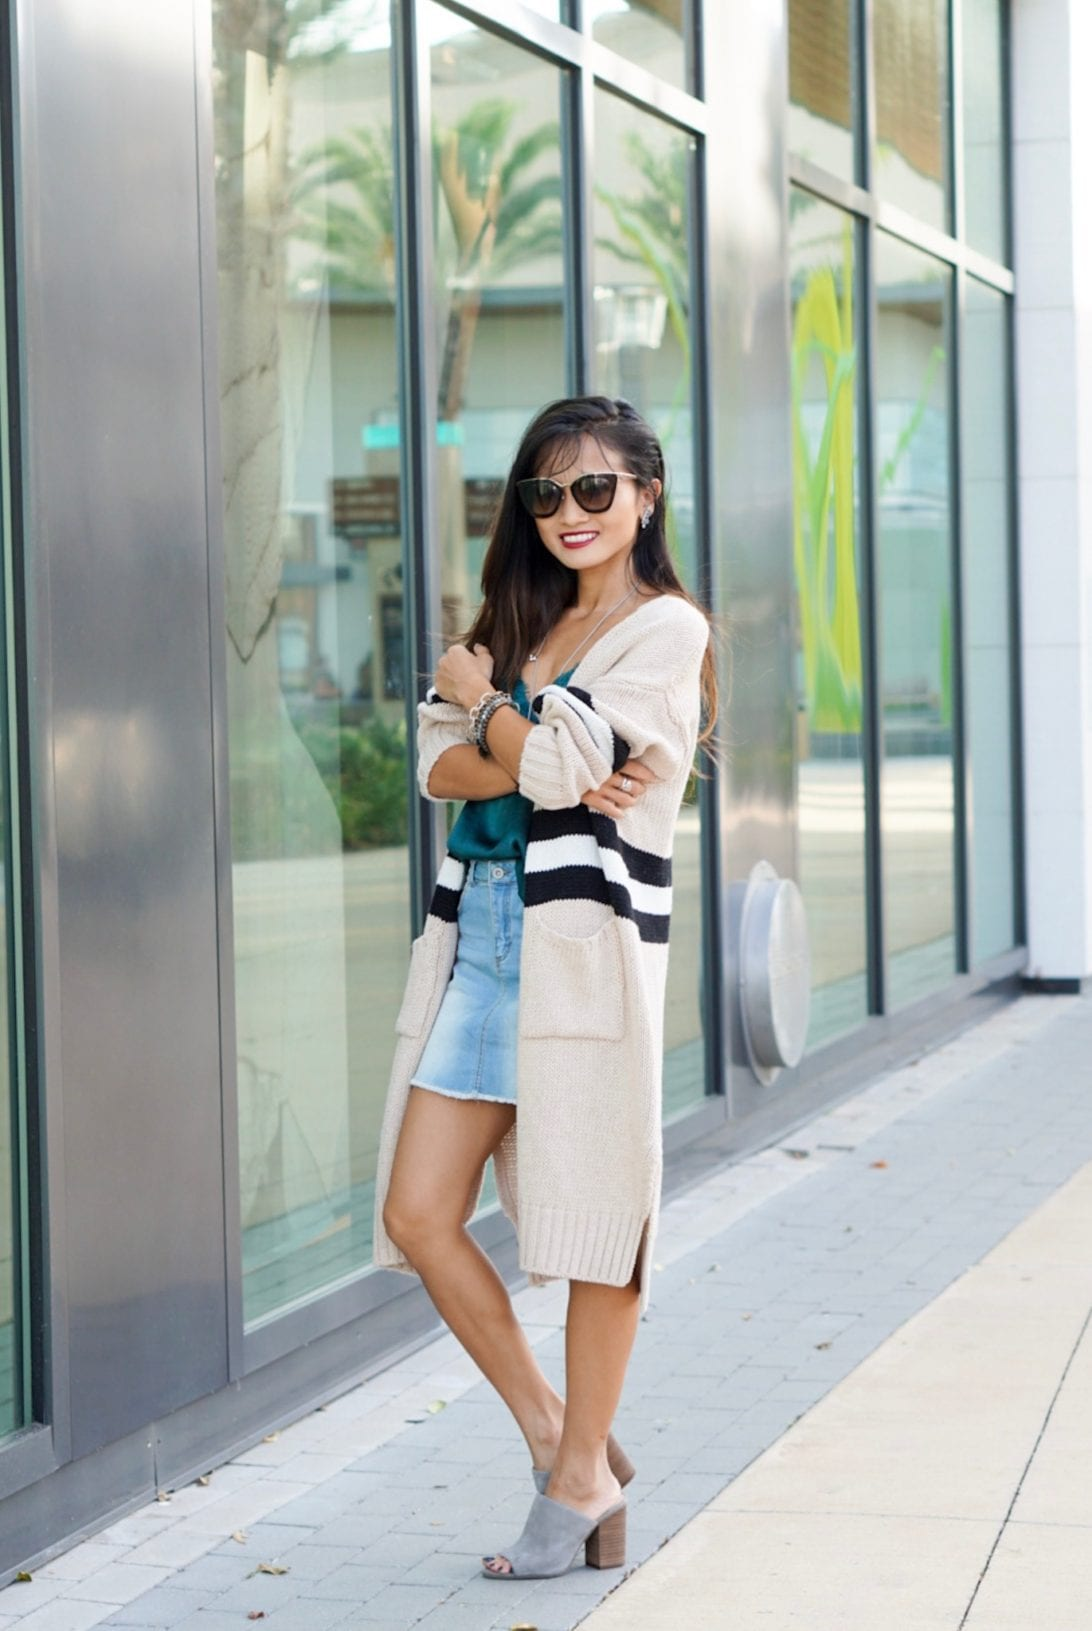 what to wear after Labor Day, transitioning from summer to fall wardrobe, what to wear in the fall, fall outfit, oversized cardigan, denim skirt, summer outfit, Prada glasses, camisole, slides, grey slides, Nordstrom, goodnight macaroon, daniel Wellington watch.